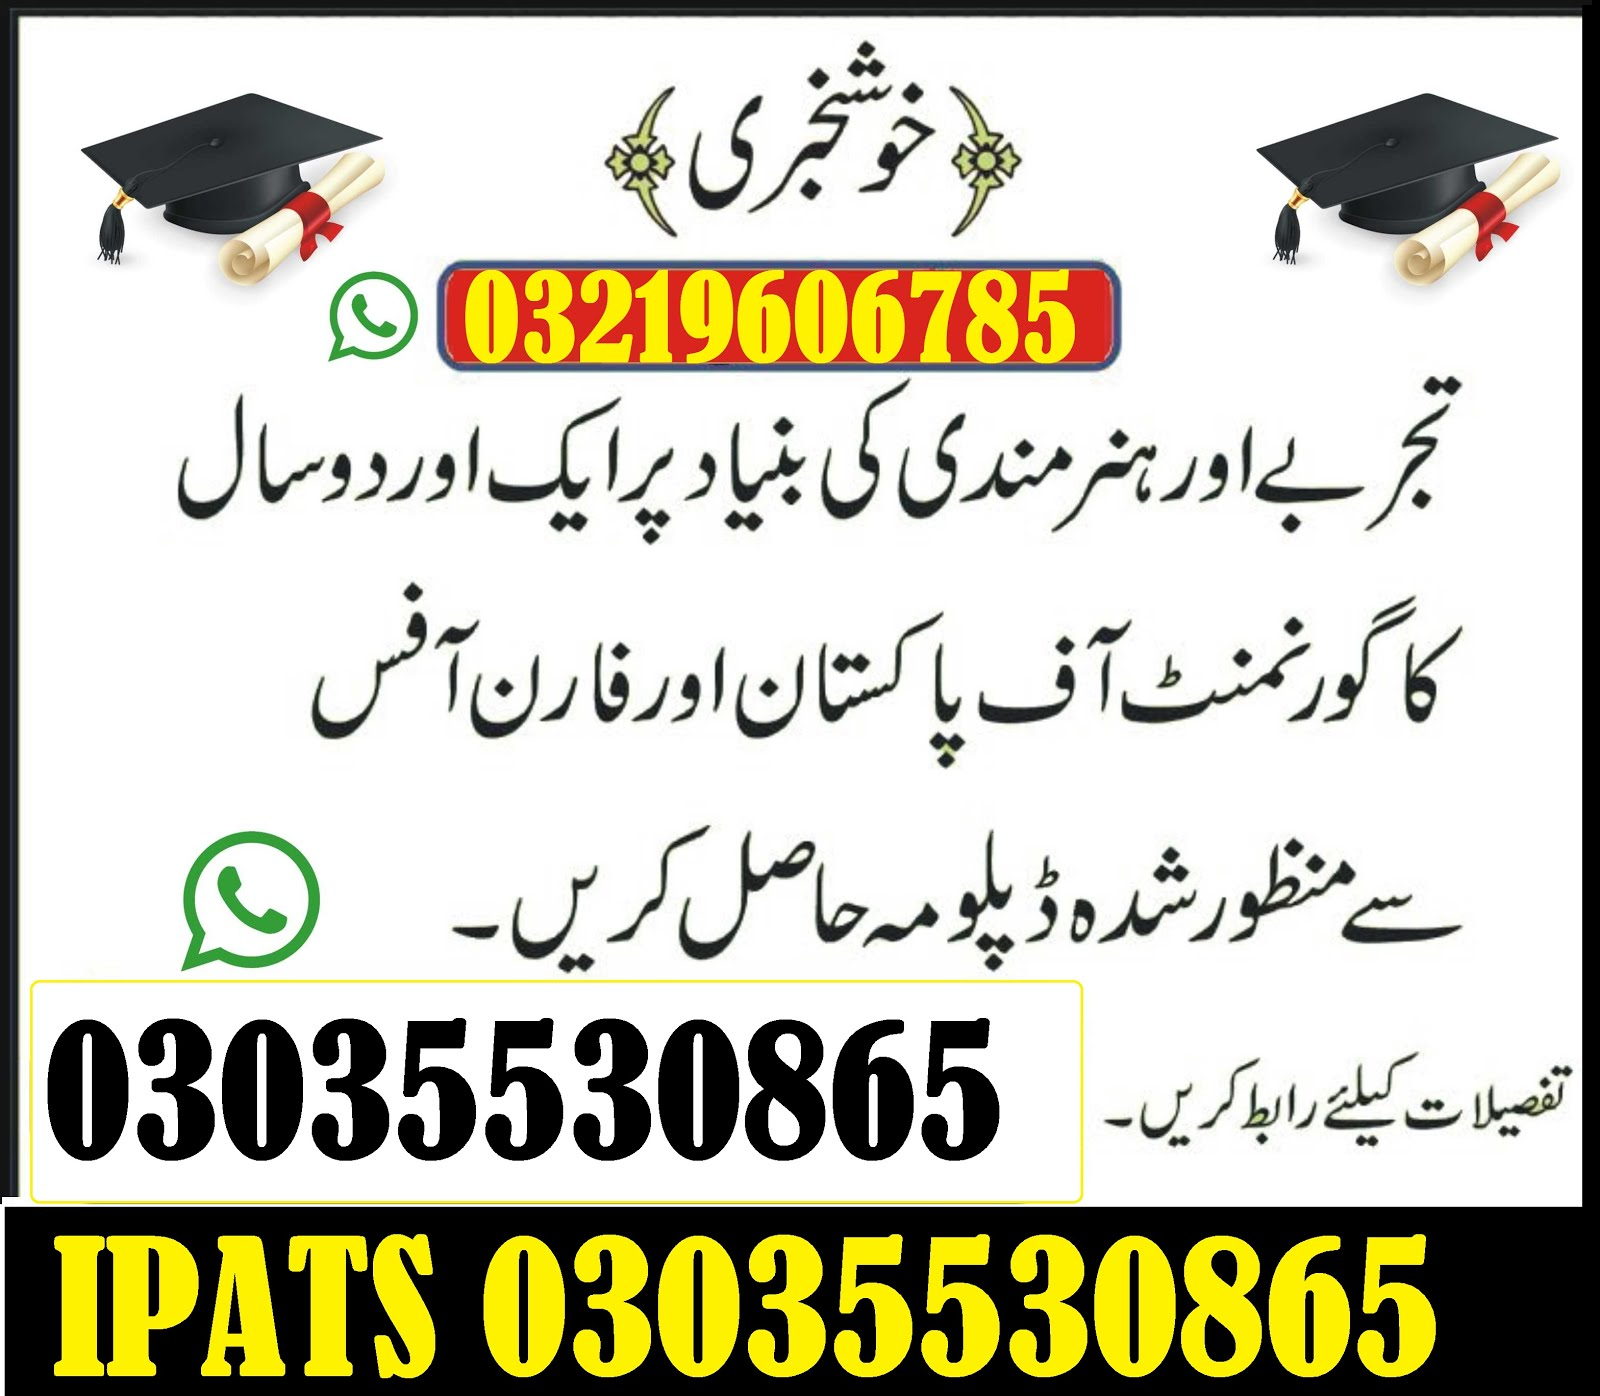 AutoCAD 2D/3D Professional Training Course Rawalpindio3035530865